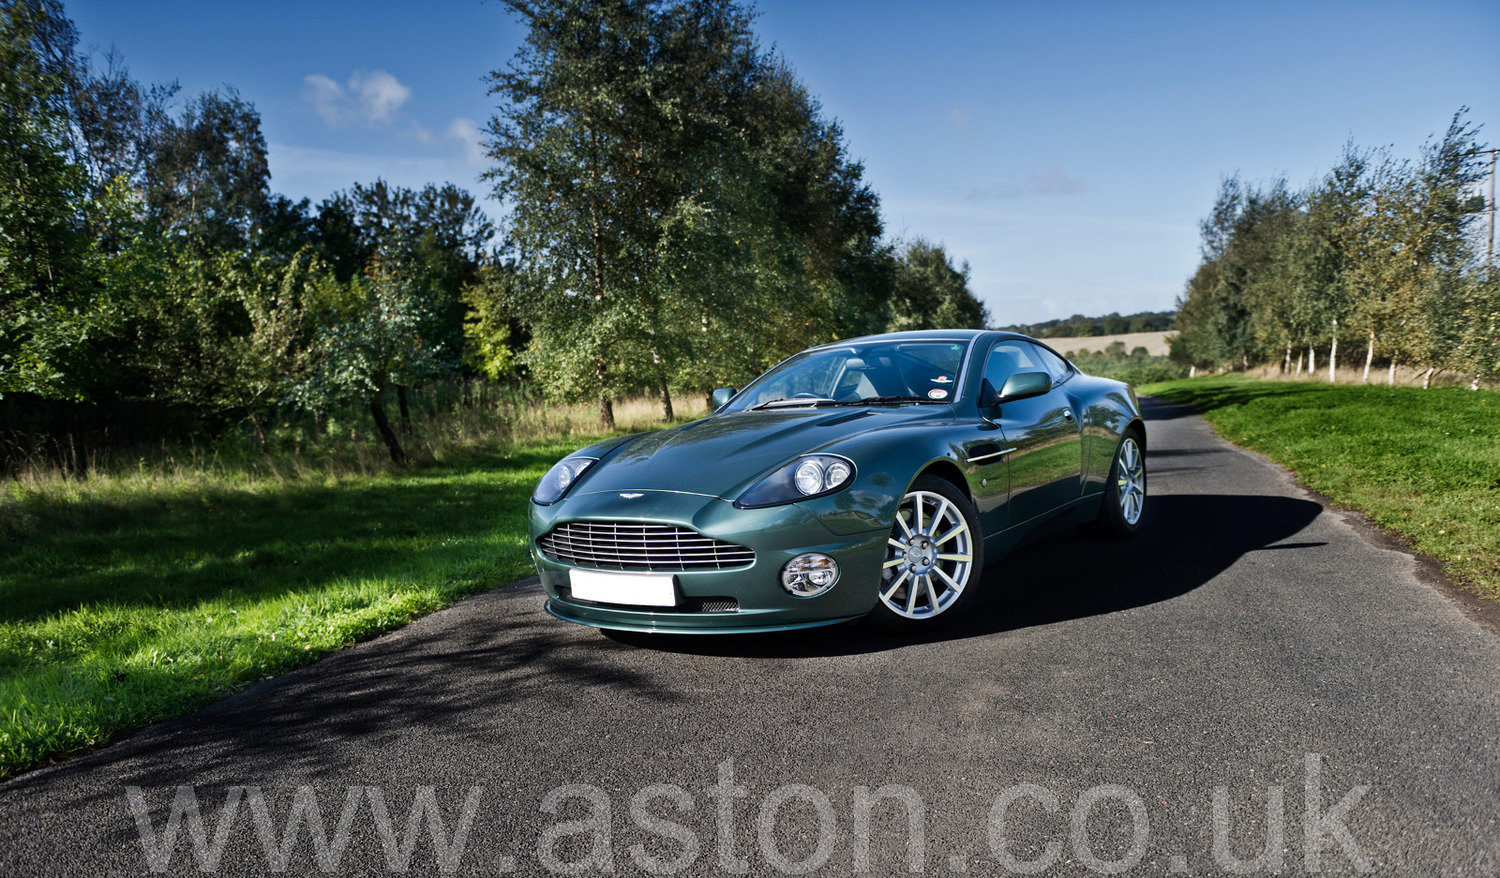 2005 Aston Martin Vanquish S 2+2 For Sale (picture 1 of 6)